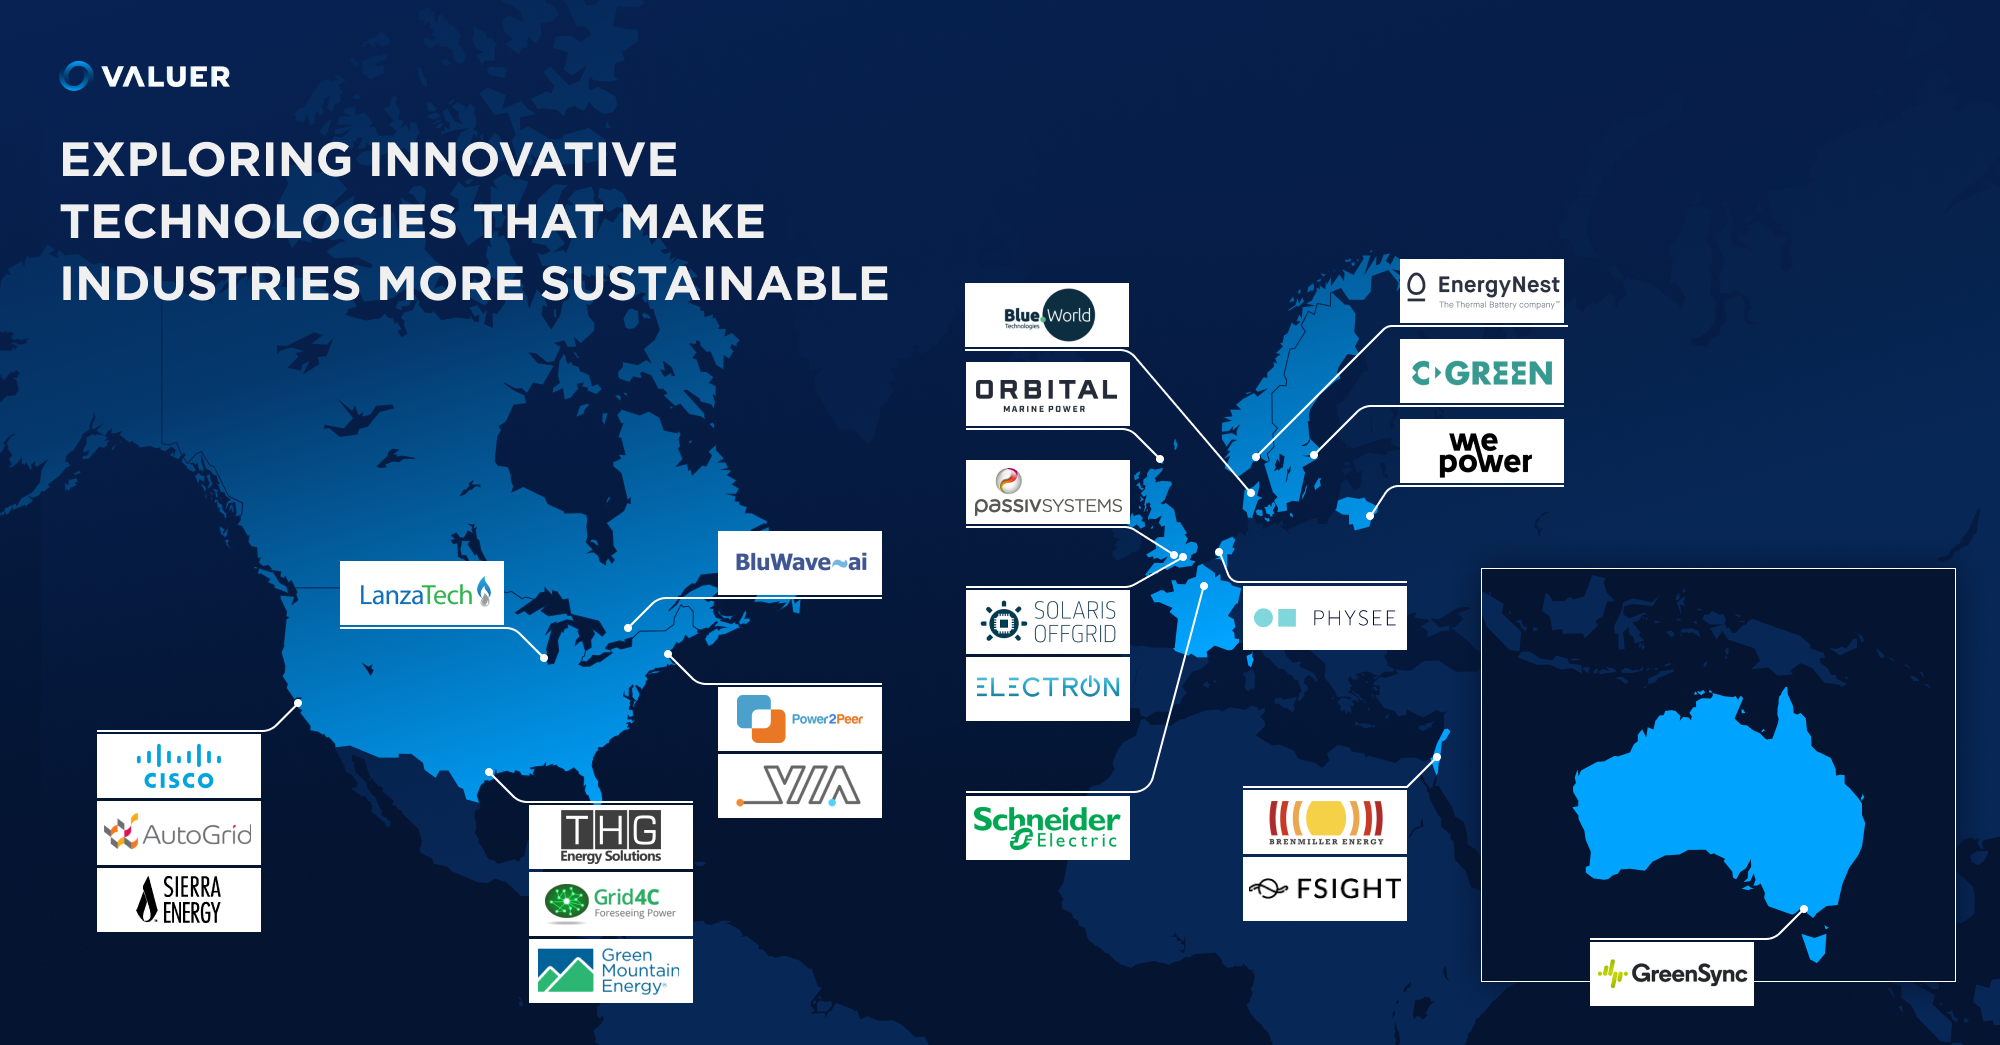 exploring innovative technologies that make industries more sustainable depicting a map and energy management companies